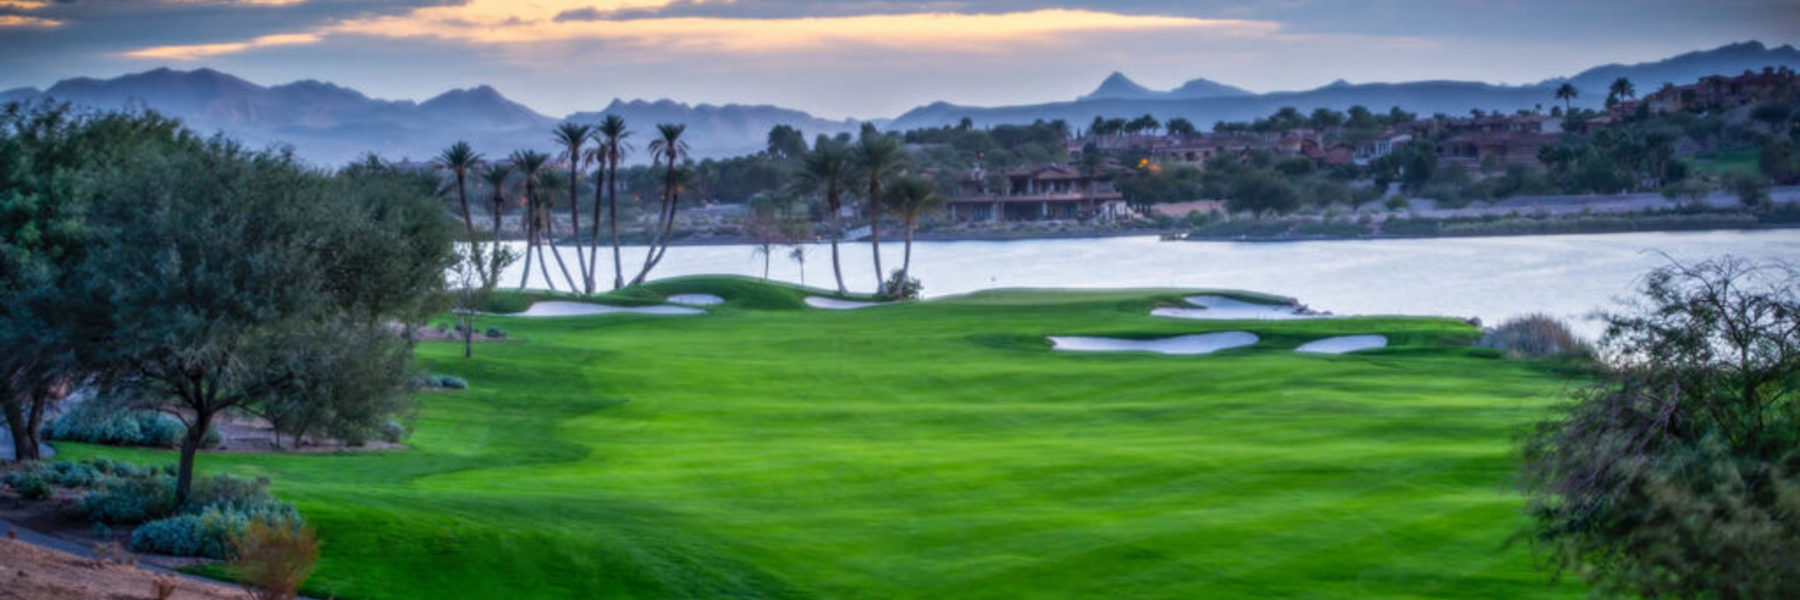 Golf Vacation Package - Reflection Bay Golf Club